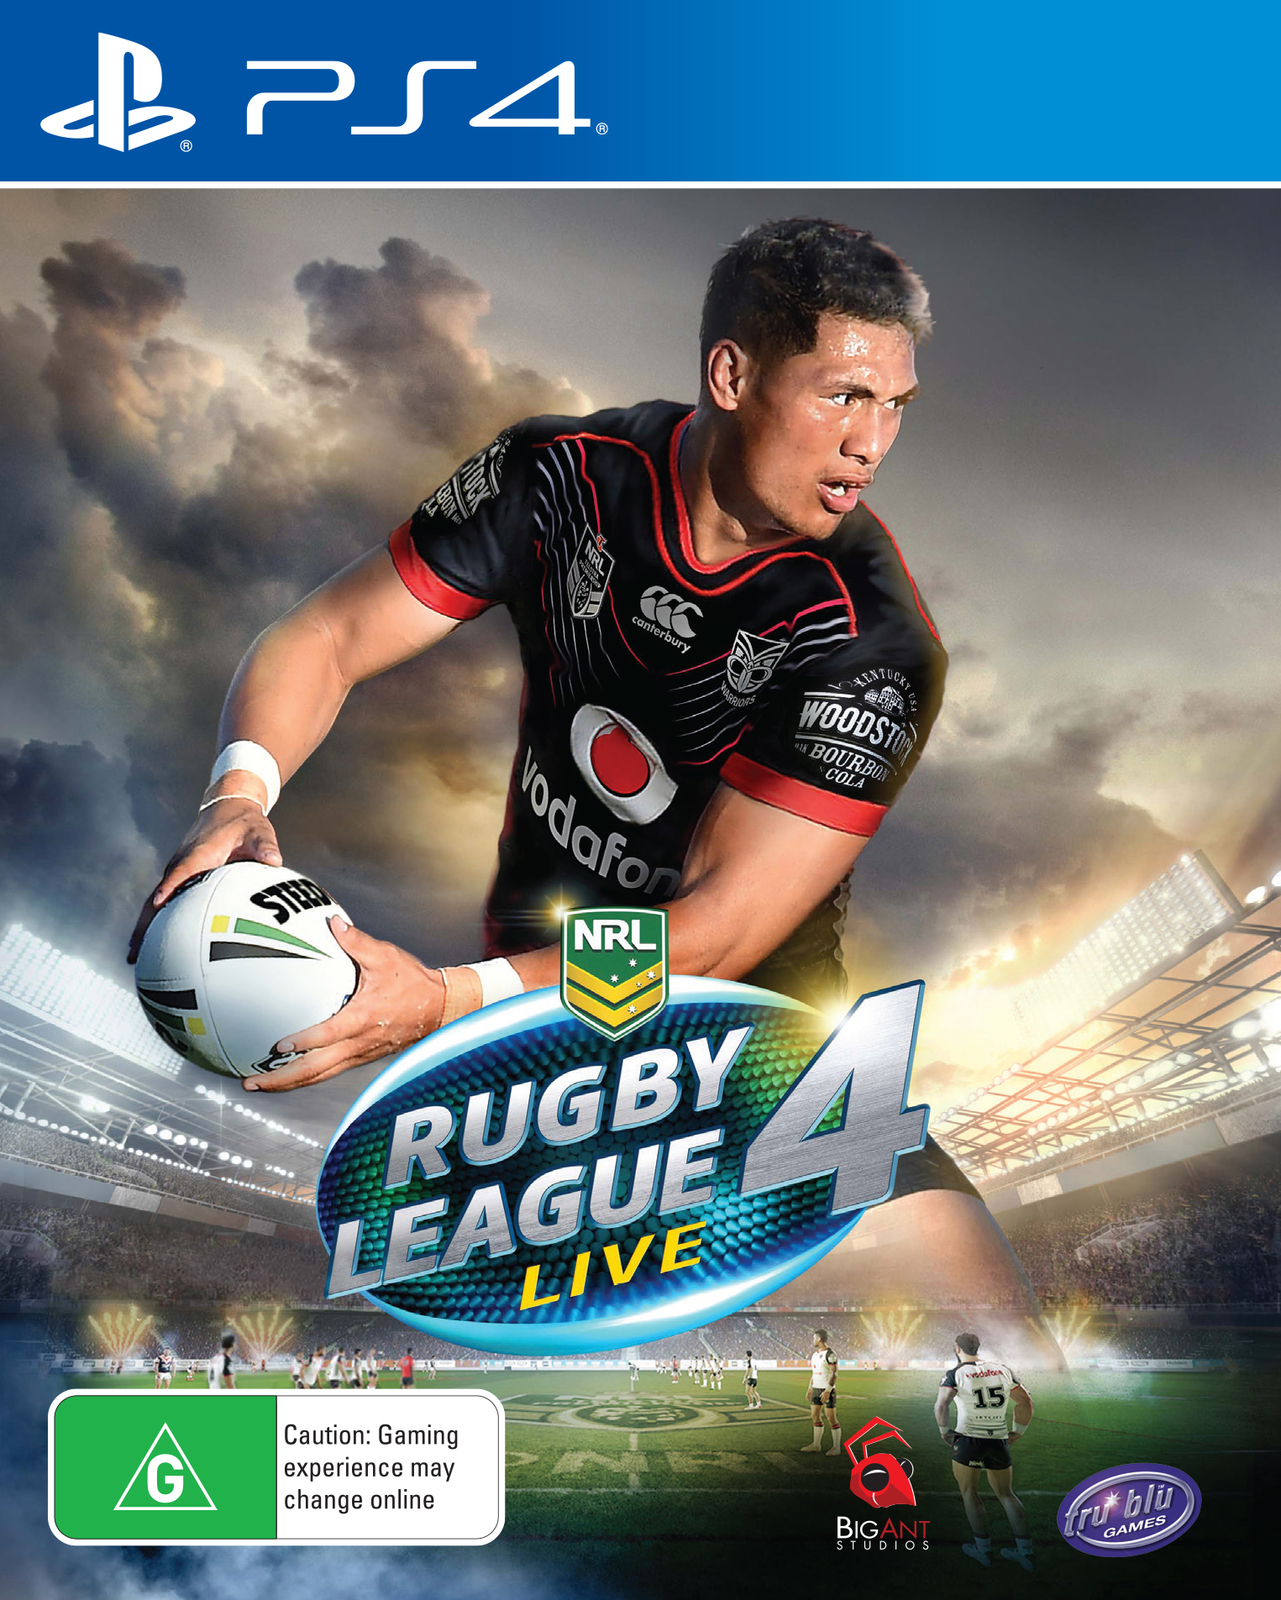 Sports Rugby Live: NRL Rugby League Game - Rugby League Live 4